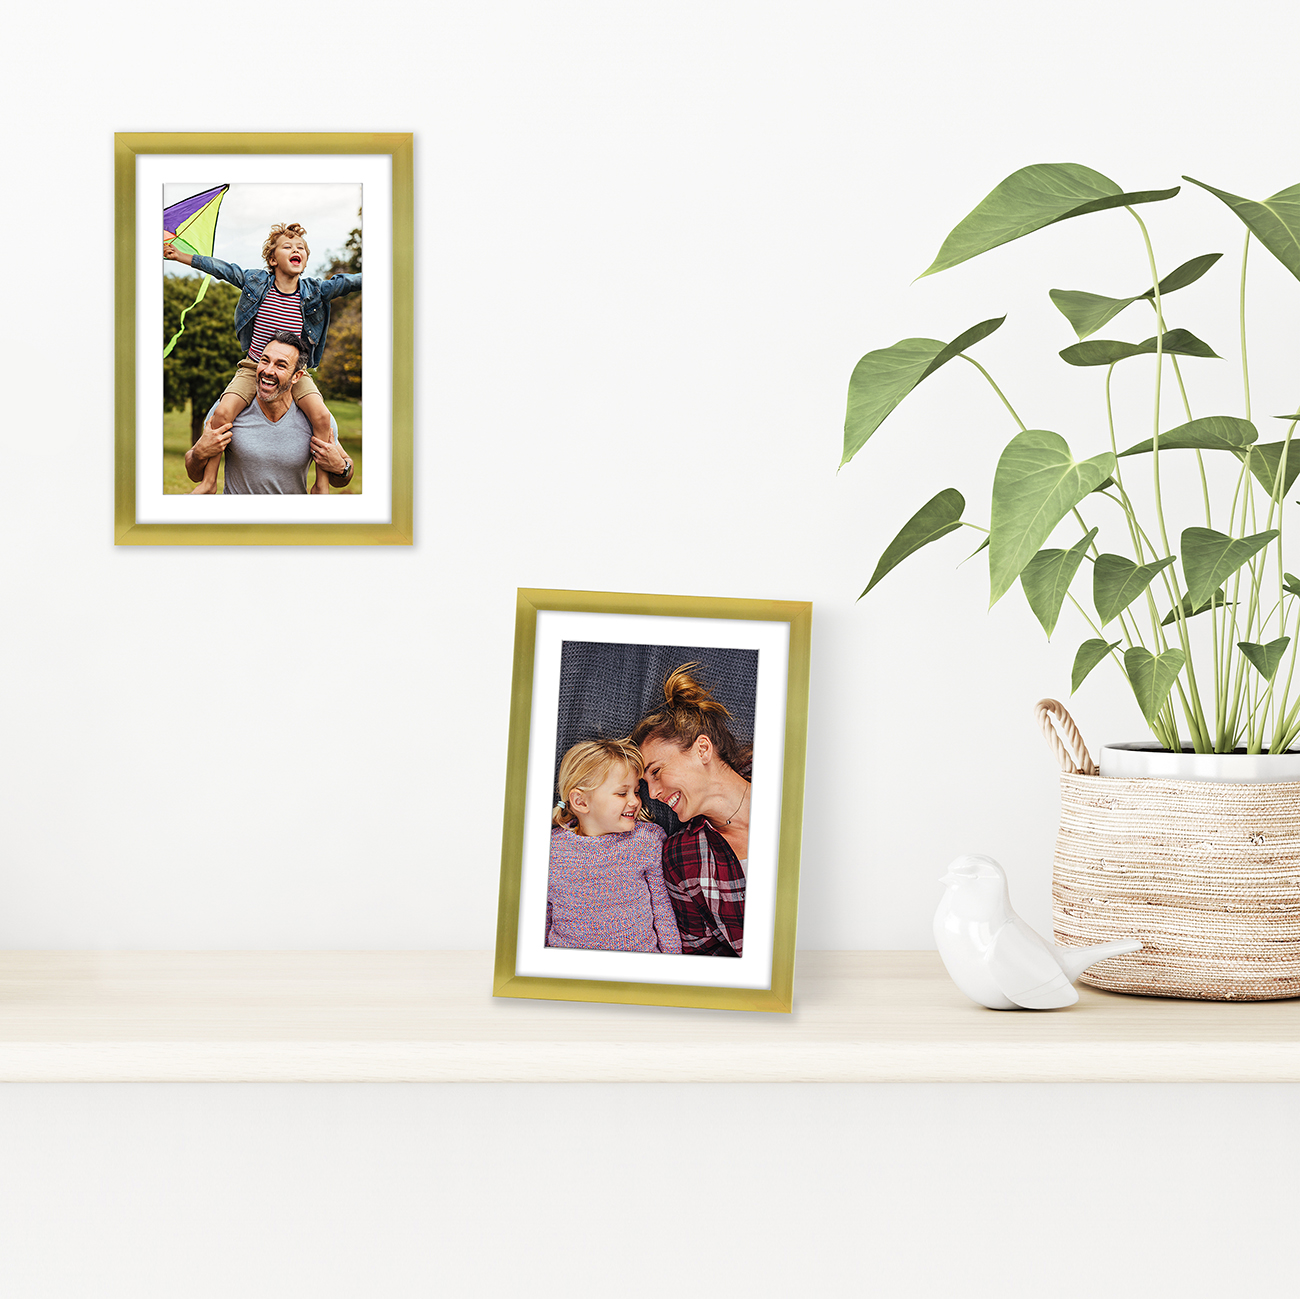 miniature 30 - Americanflat Thin Picture Frame 5x7 8x10 11x14 8.5x11 Wall Tabletop Pick Color